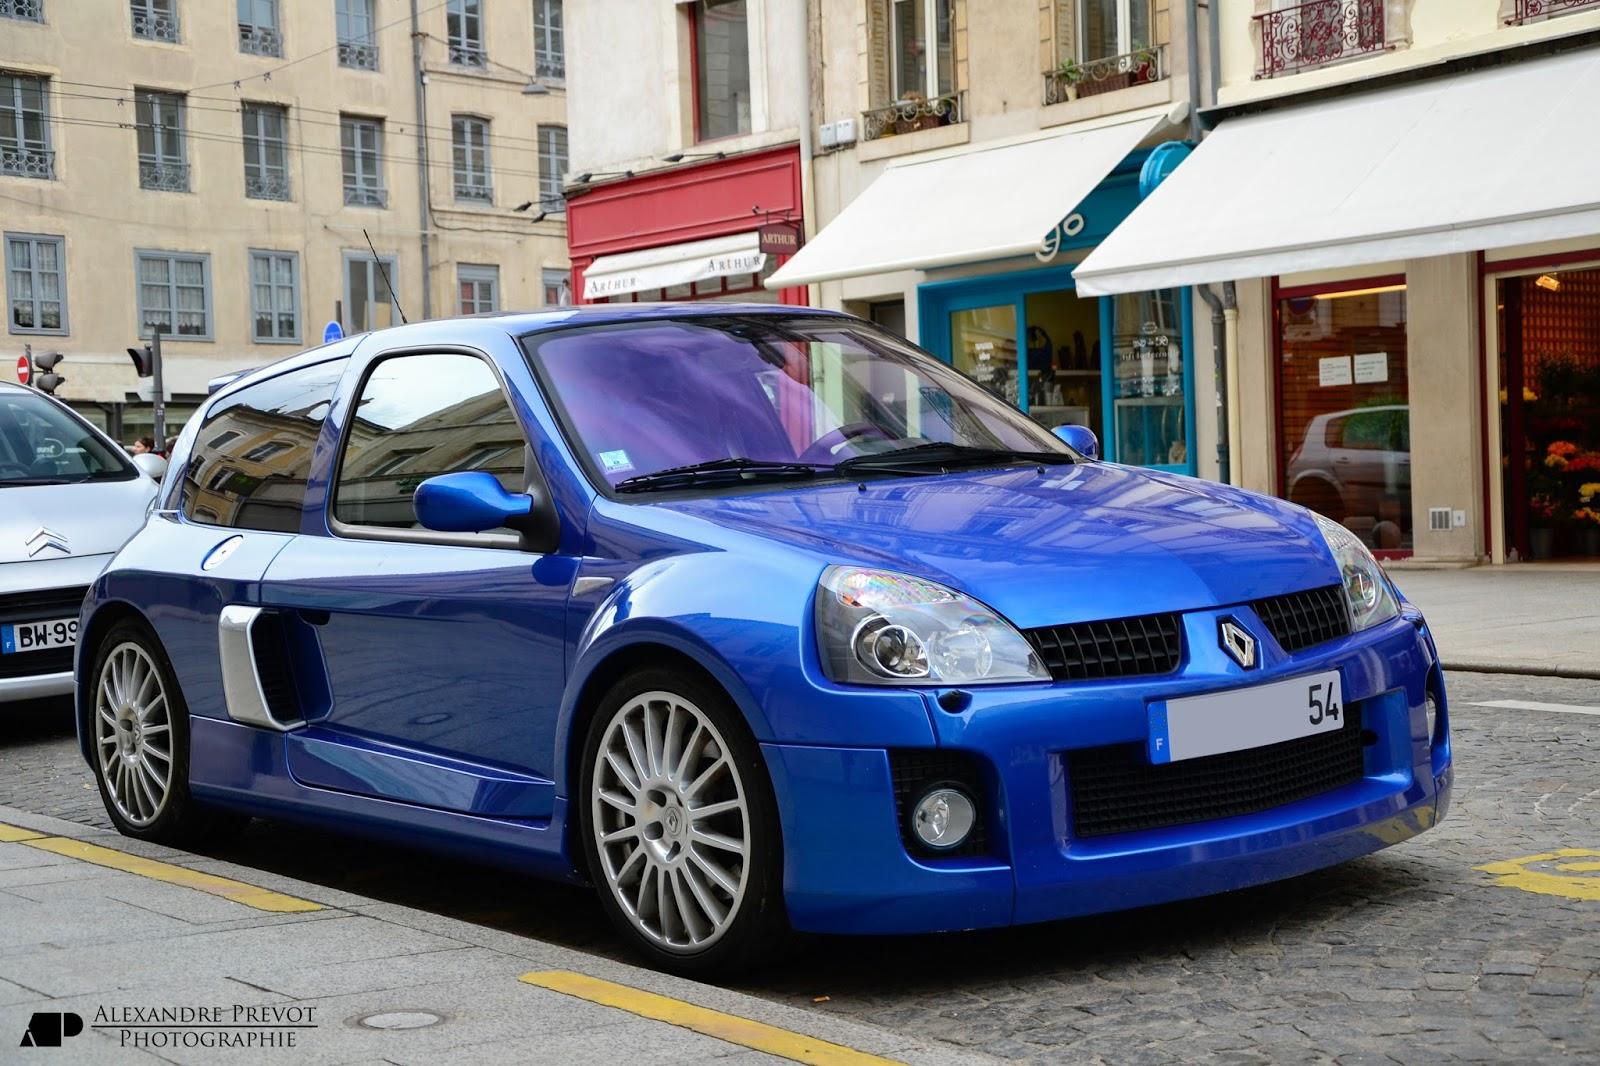 10 French Cars Which You Hate To Admit That Love Car Guys Citroen As Can See There Are A Lot Of Great I Only Mentioned So Next Time When Peugeot Or Renault Is In